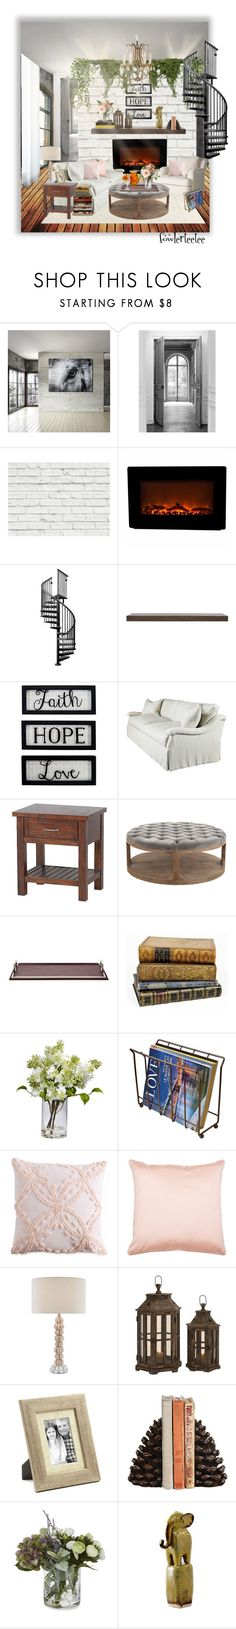 """""""Hopeless Romantic"""" by fowlerteetee ❤ liked on Polyvore featuring interior, interiors, interior design, home, home decor, interior decorating, Ready2hangart, Maison Margiela, Brewster Home Fashions and Eureka"""